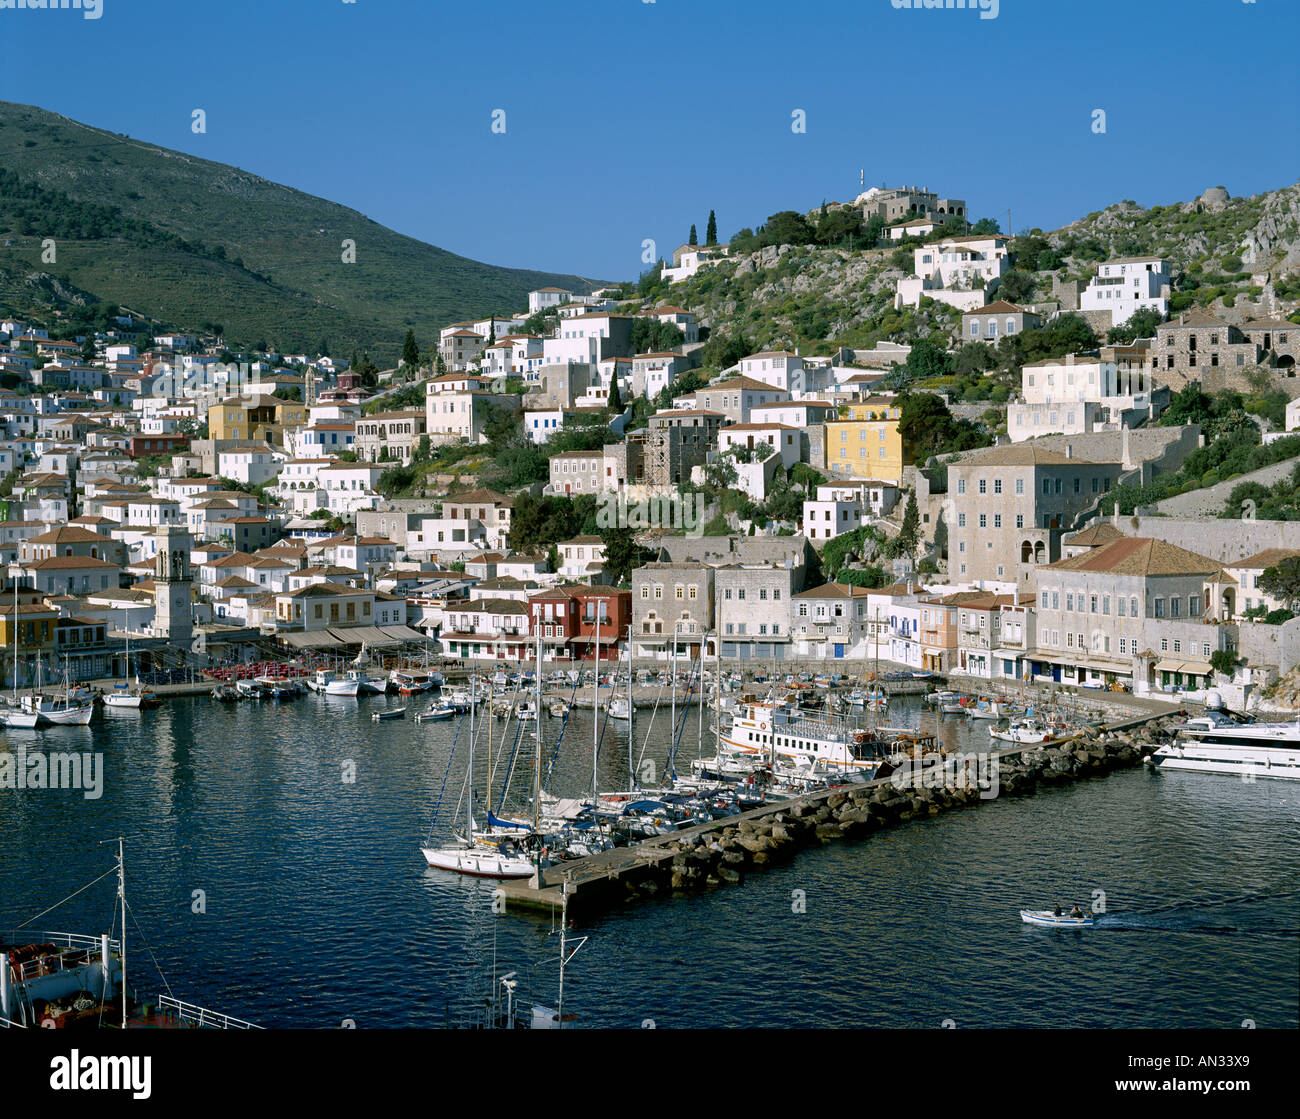 Town View & Harbour, Hydra (Ydra), Argo-Saronic Islands, Greece - Stock Image